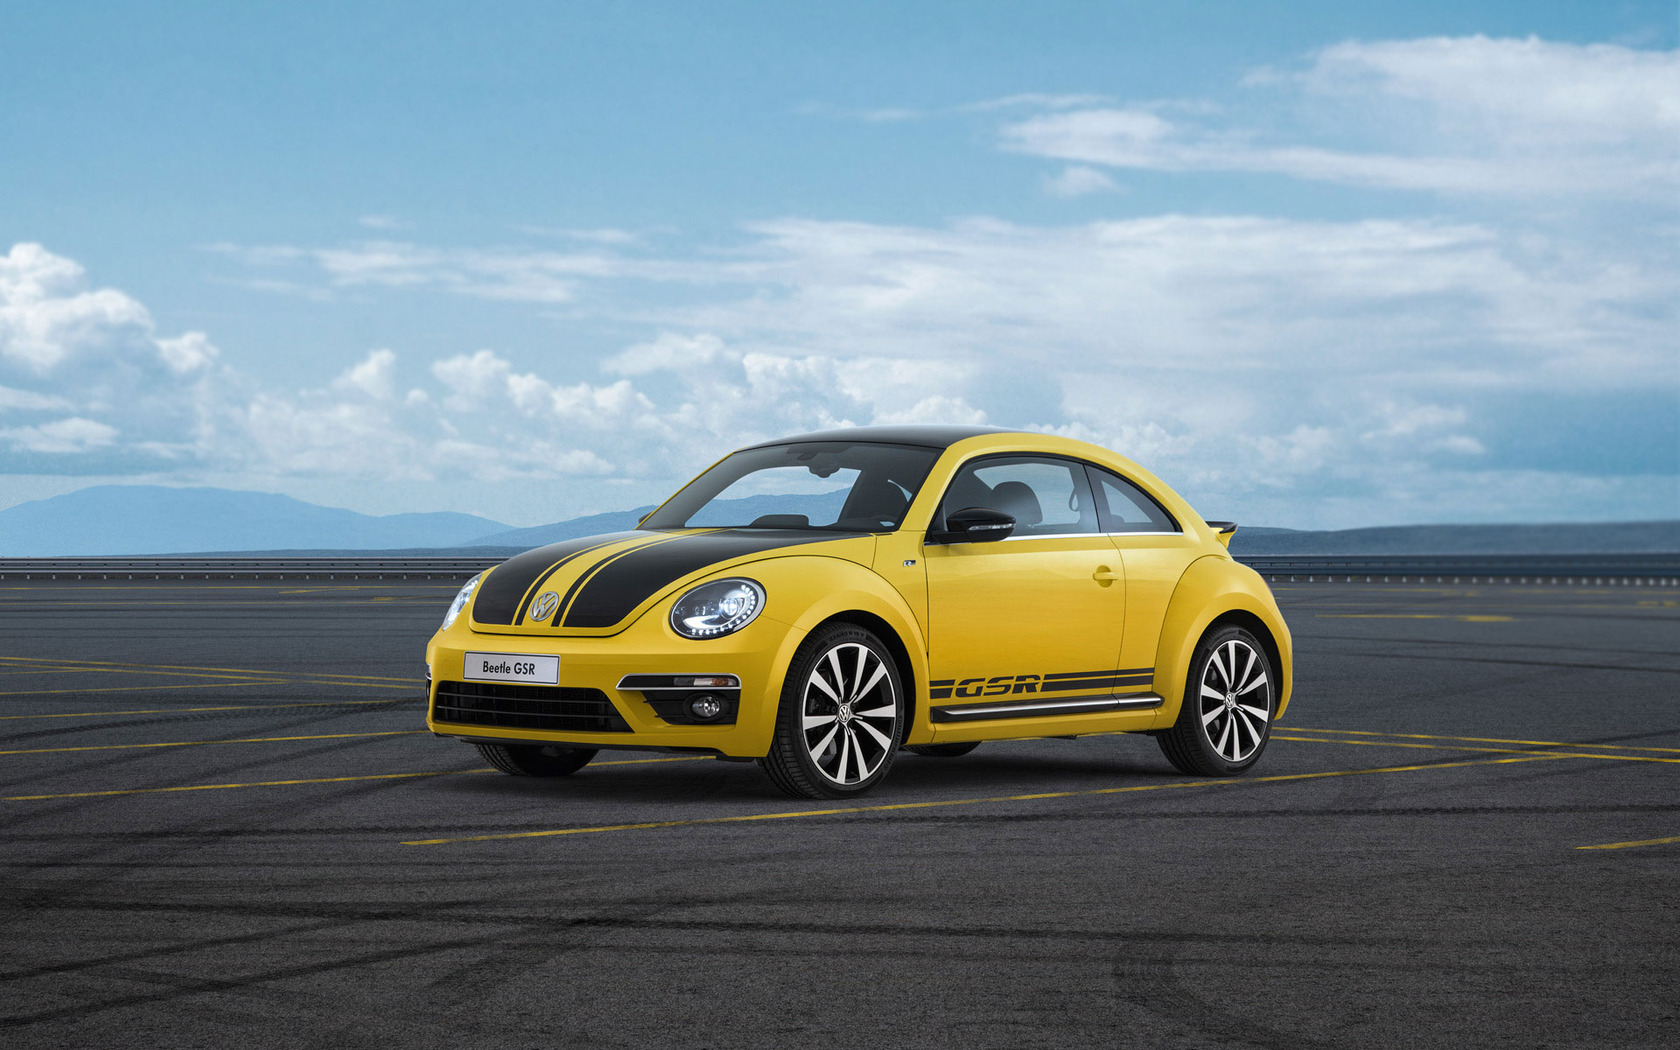 Download 2013 Volkswagen Beetle GSR wallpaper 1680x1050